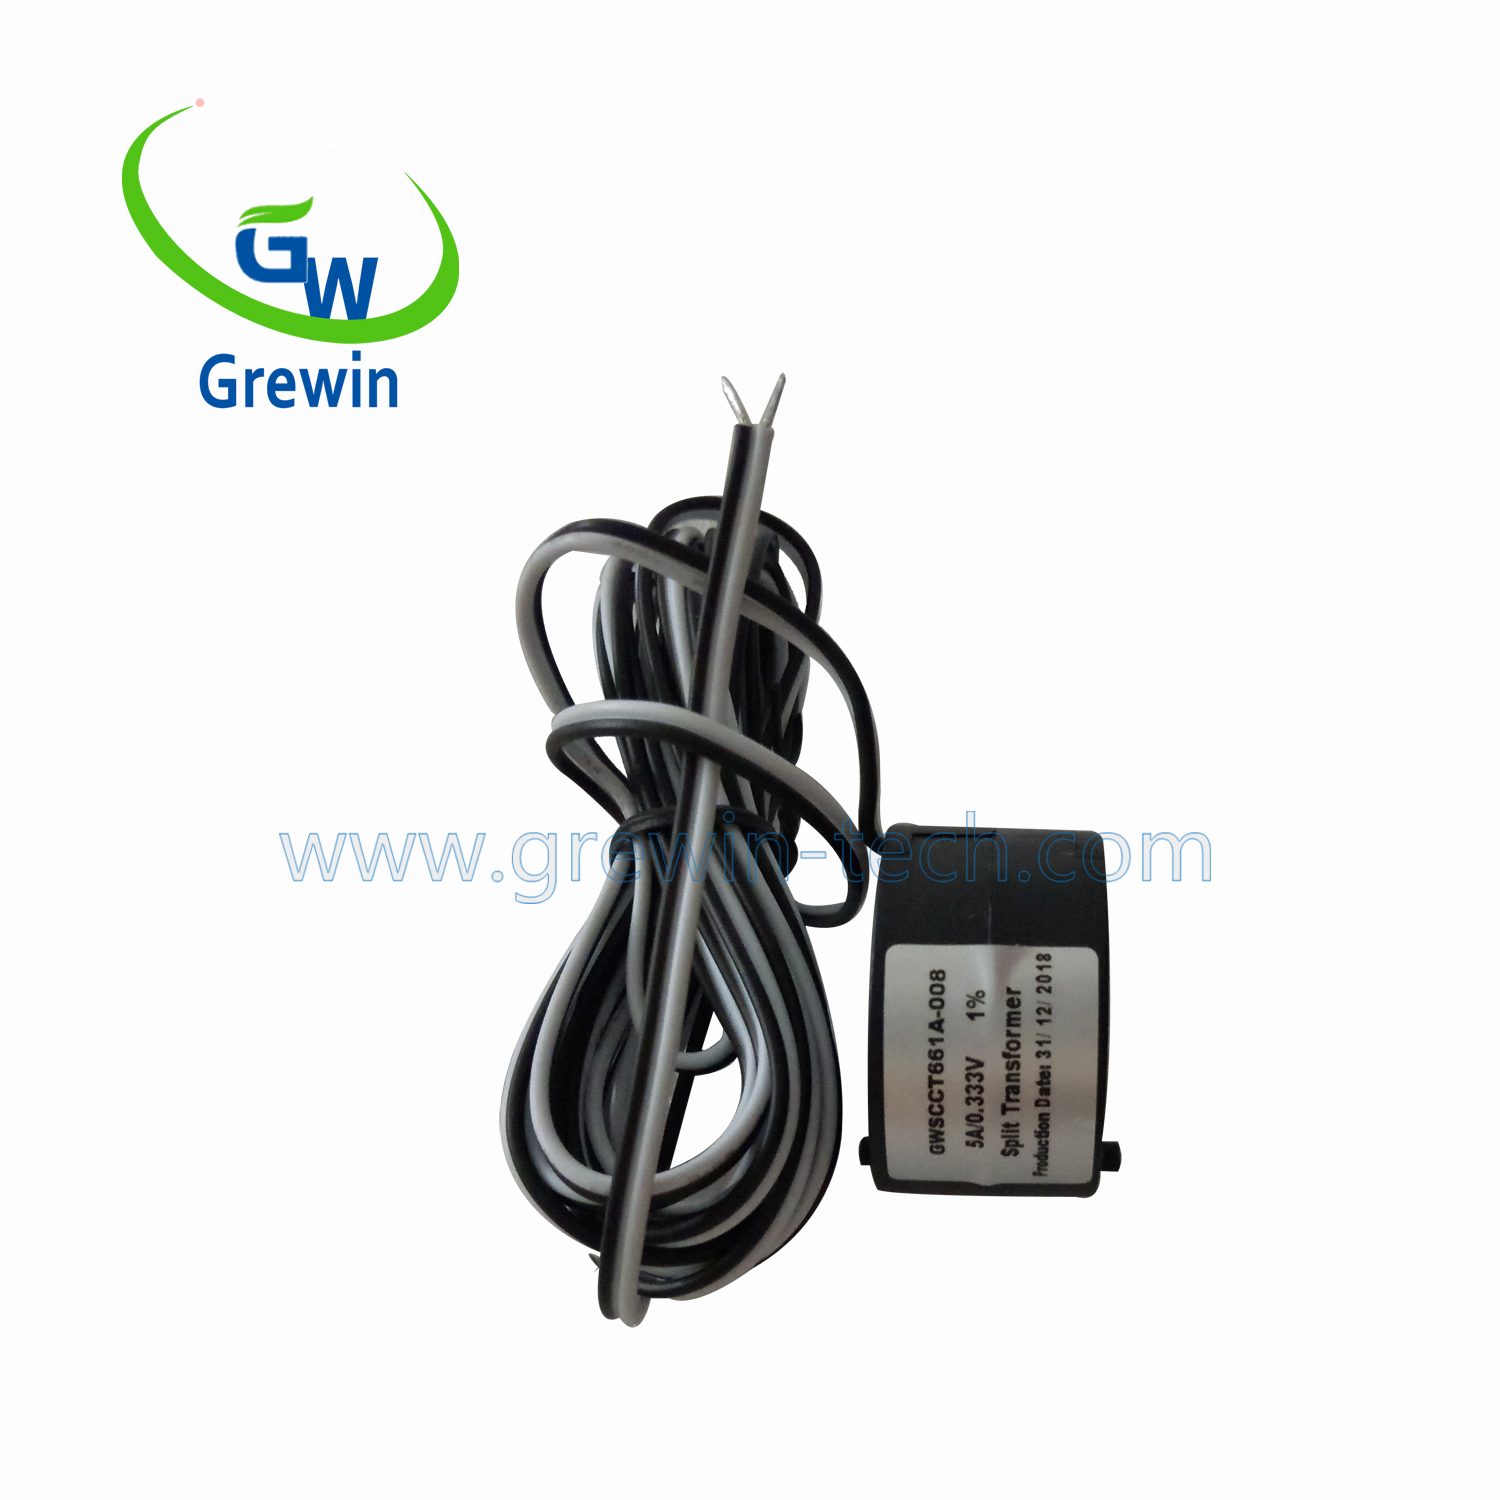 GWSCCT661Rated Input 0.5-630A Output 0-500mA/0.333V split core toroidal current transformer for Current measurement